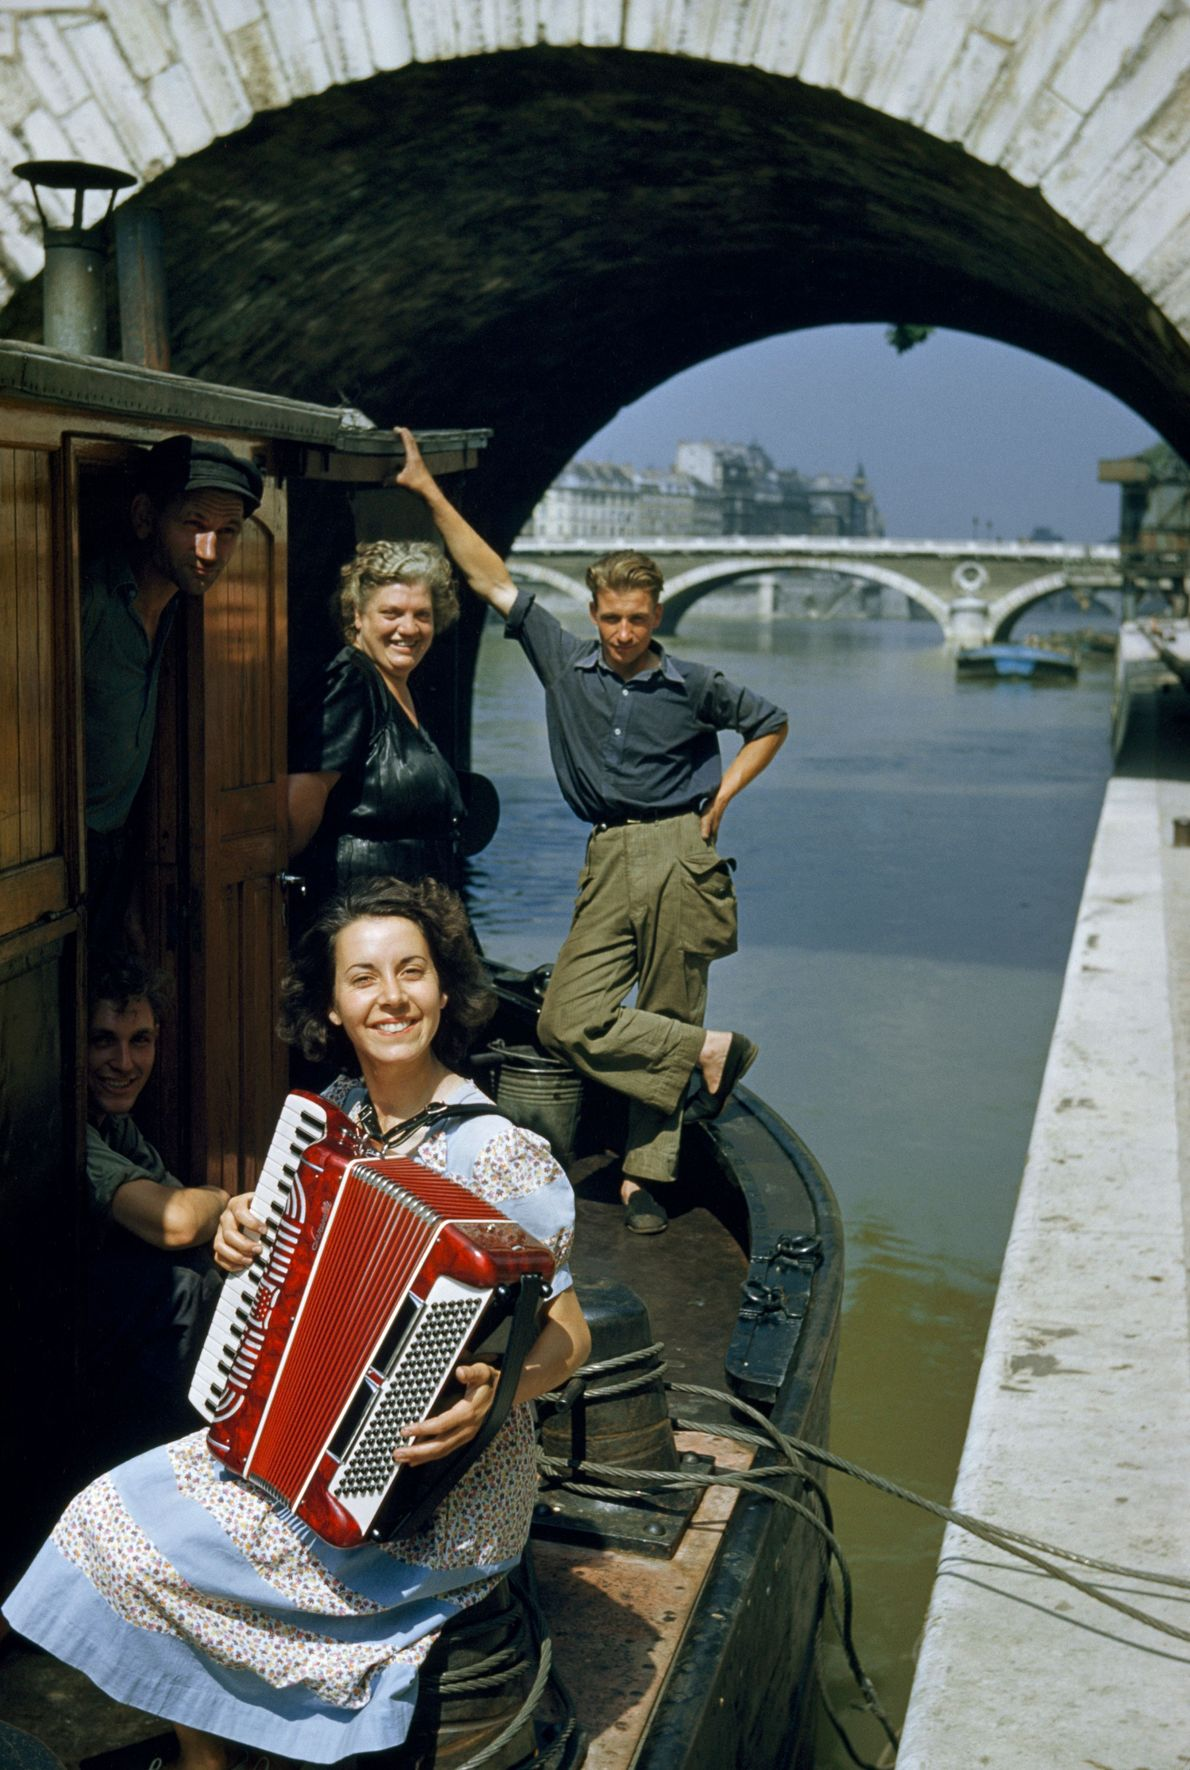 Accordion tunes set the mood on a Seine River cruise.